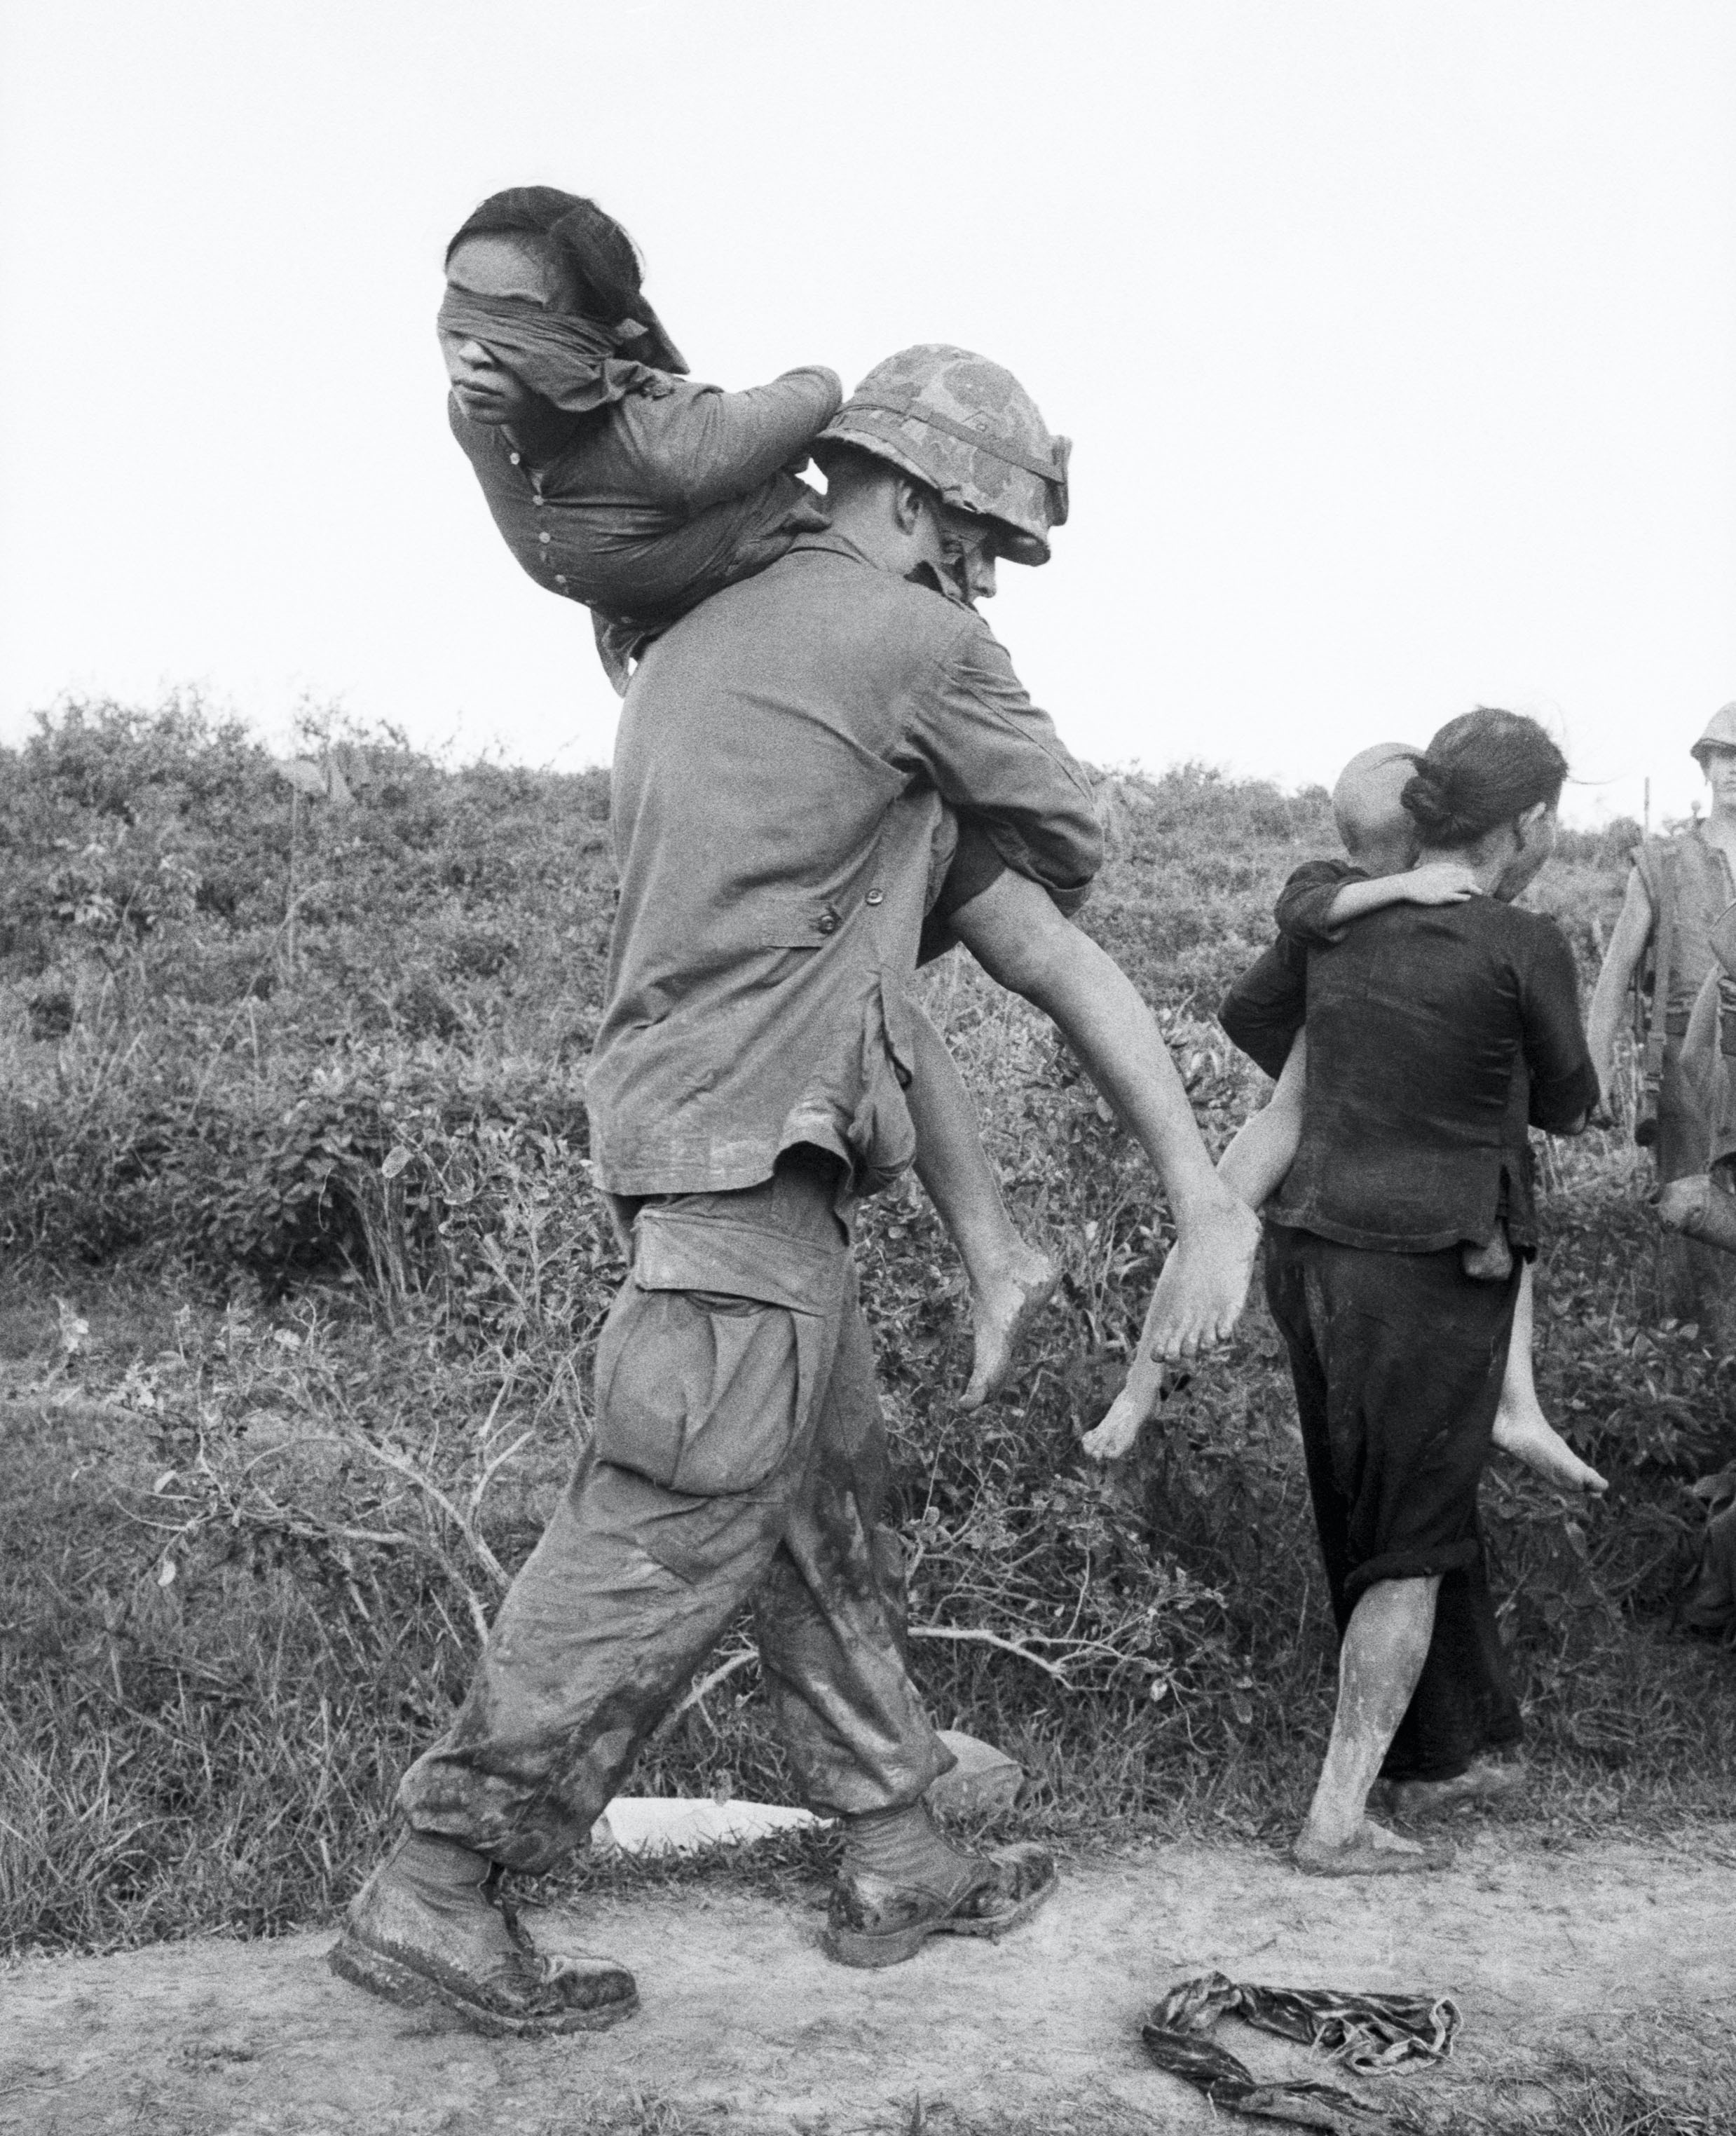 The ken burns vietnam war documentary glosses over devastating a us marine carries a blindfolded woman suspected of vietcong activities she and other prisoners sciox Image collections